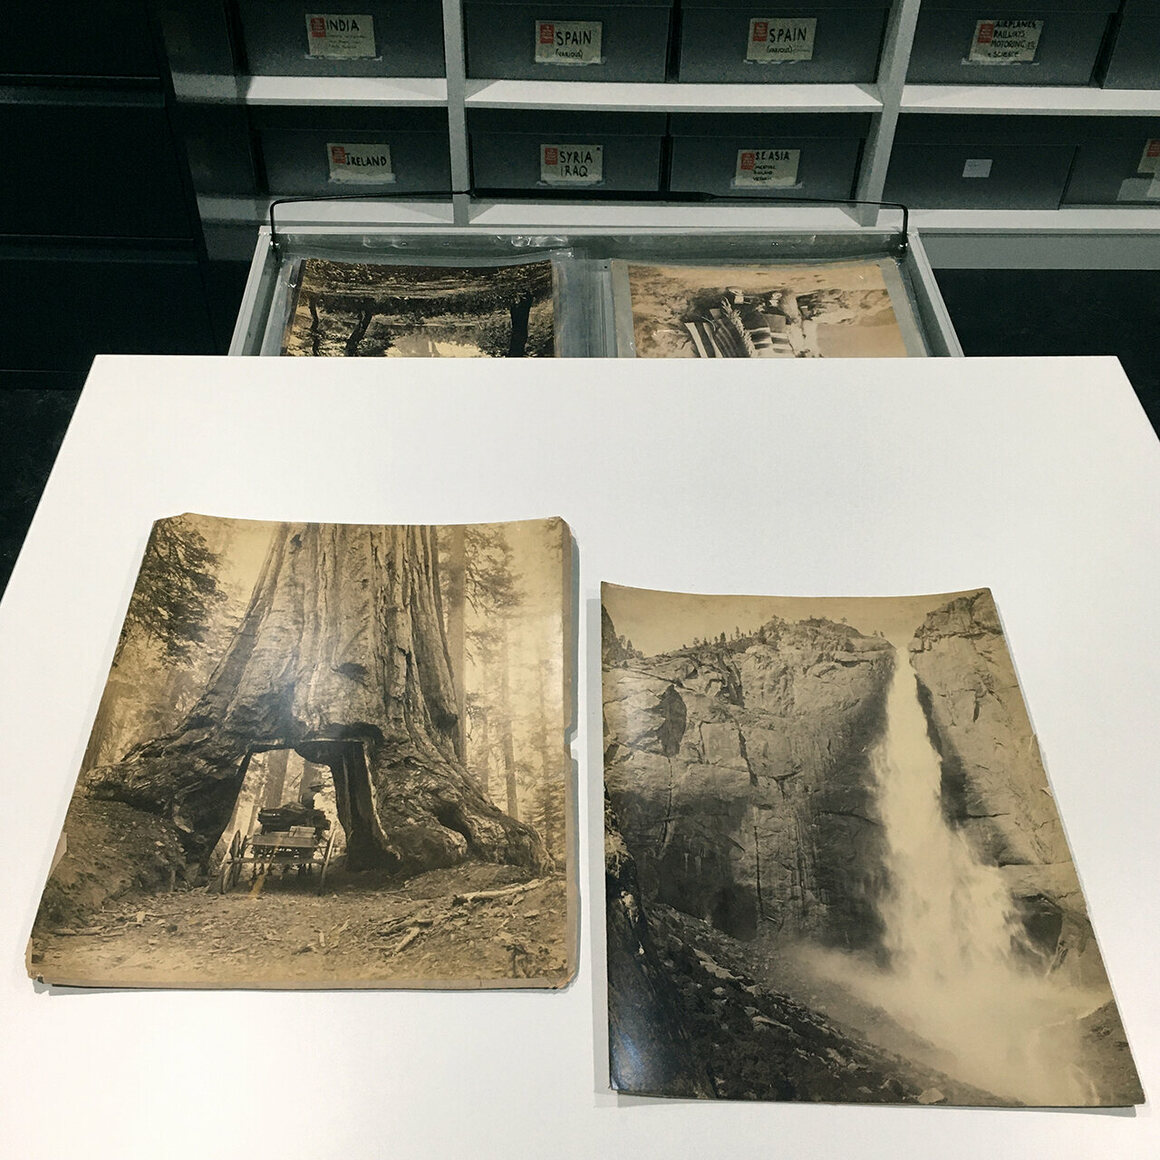 Watkins's prints of Yosemite at the Getty Images Archives.